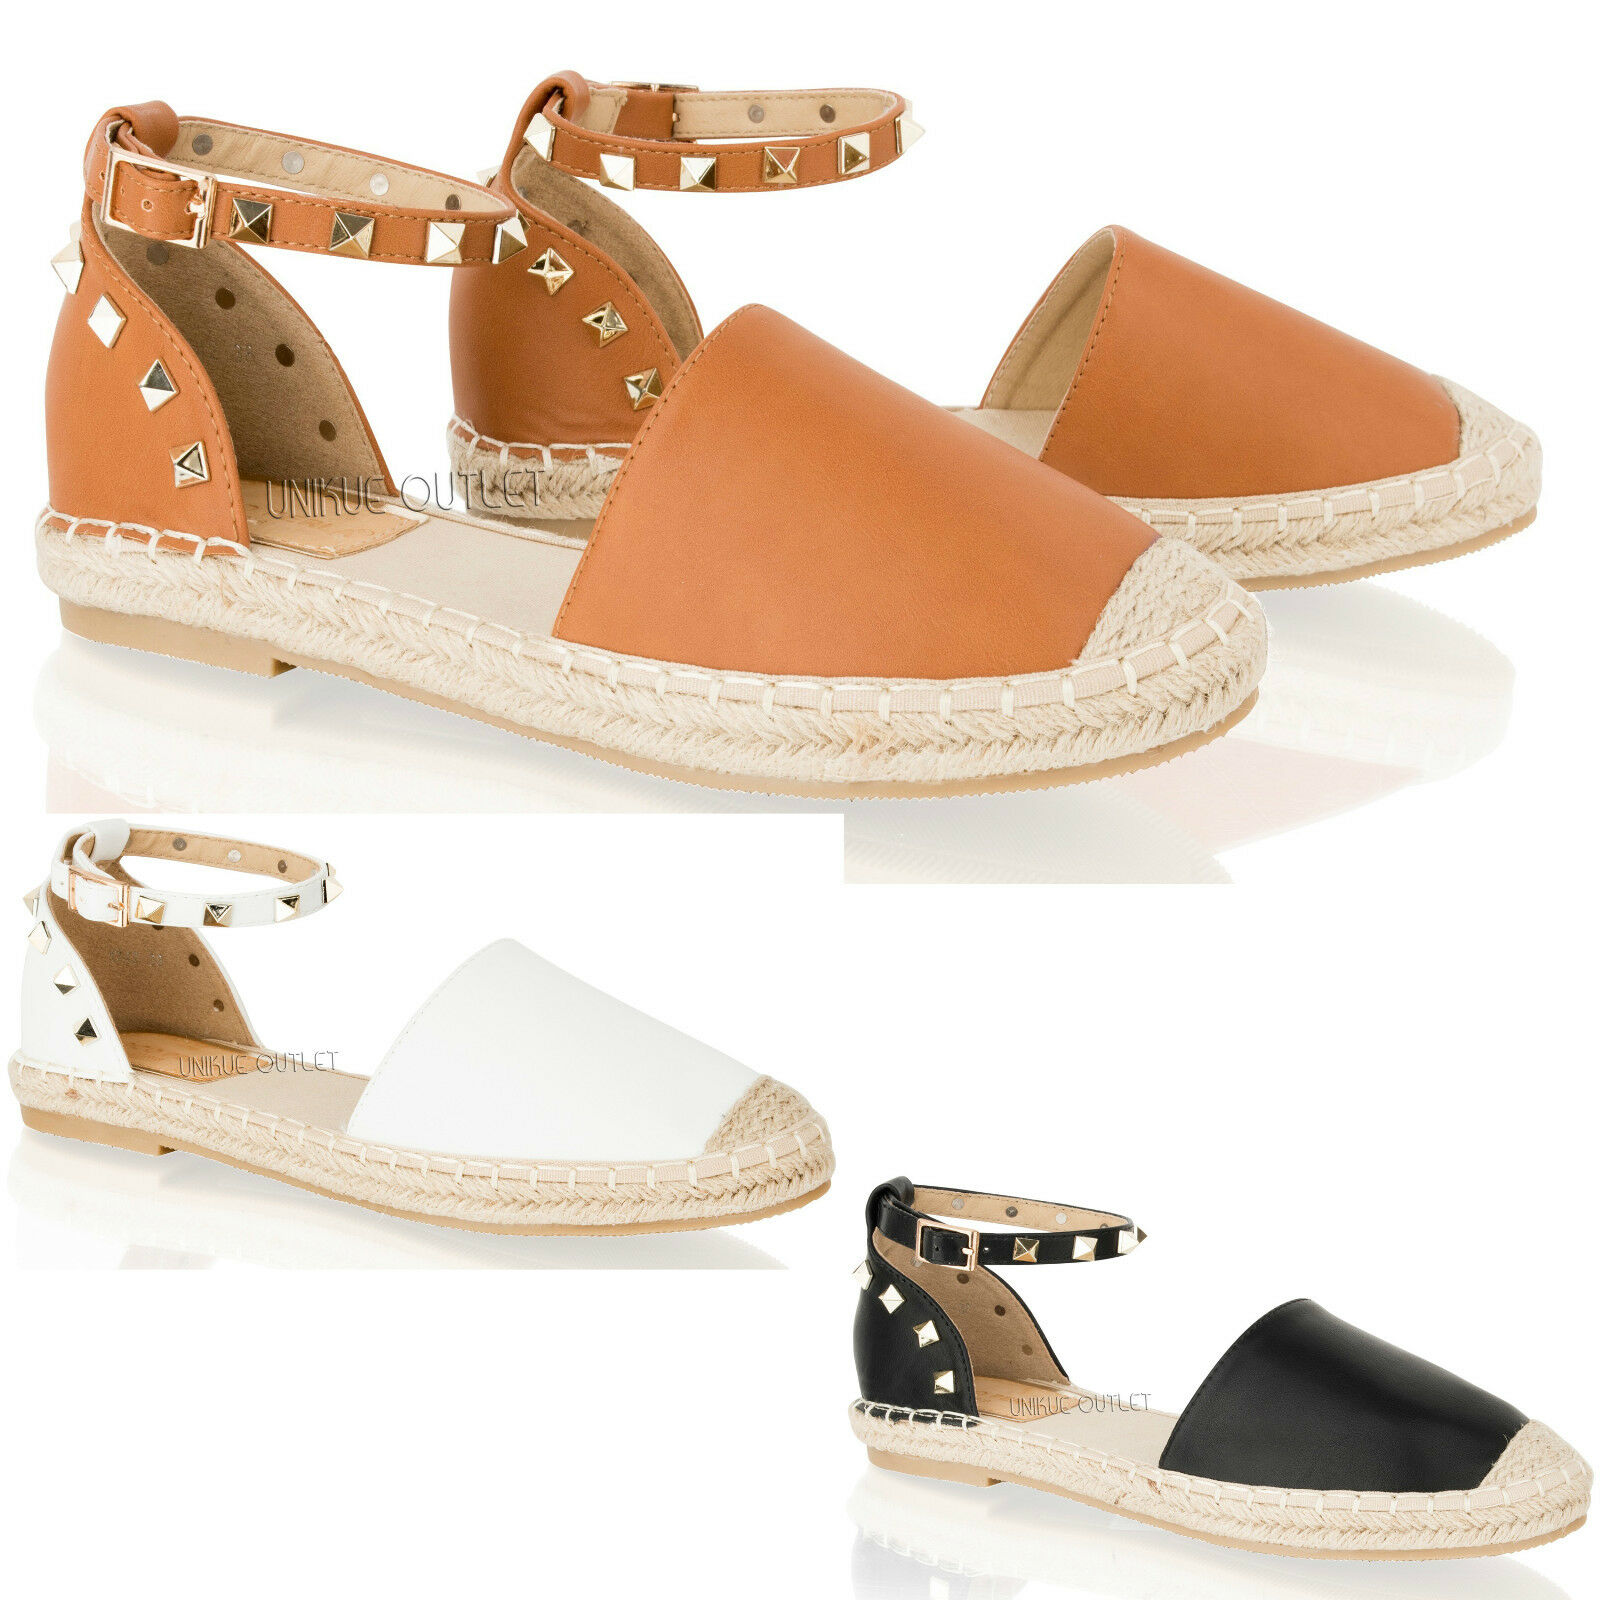 Womens Espadrilles Ladies Summer Flat Sandals Ankle Strap Espadrilles Womens Studded Shoes Size 3-8 dcd4fd